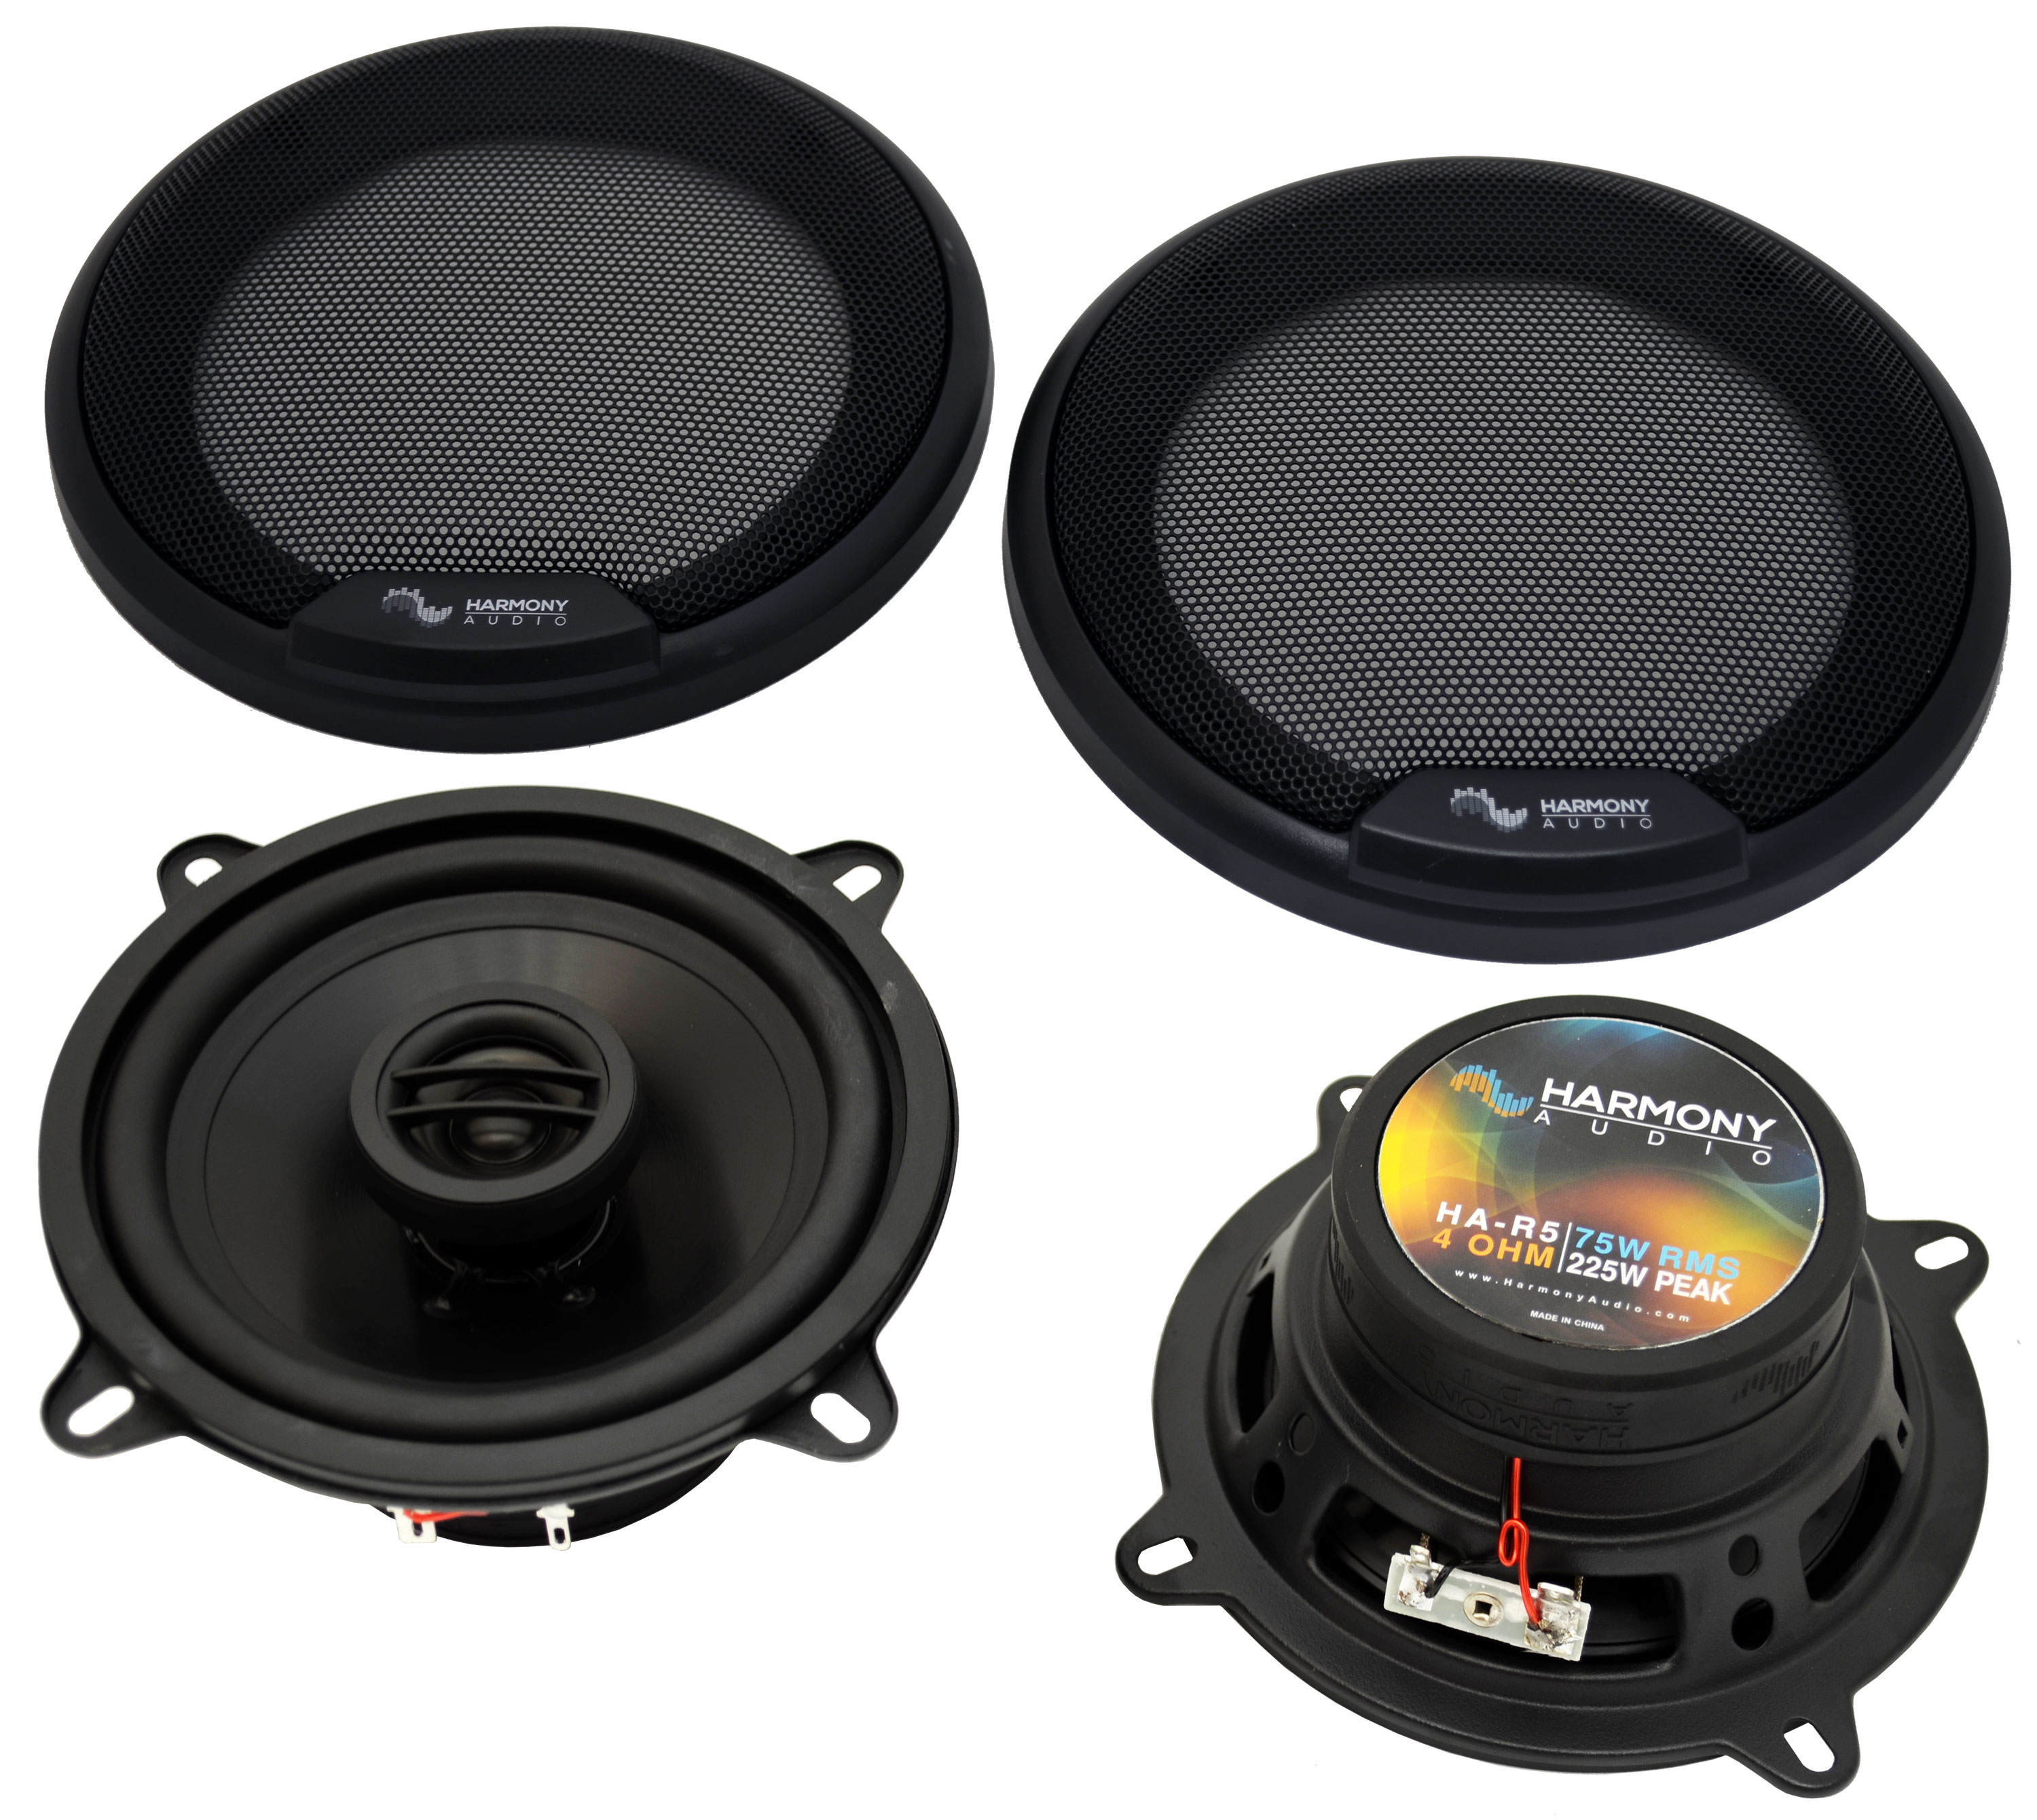 Fits Volvo S40 2000-2004 Front Door Replacement Speaker Harmony HA-R5 Speakers